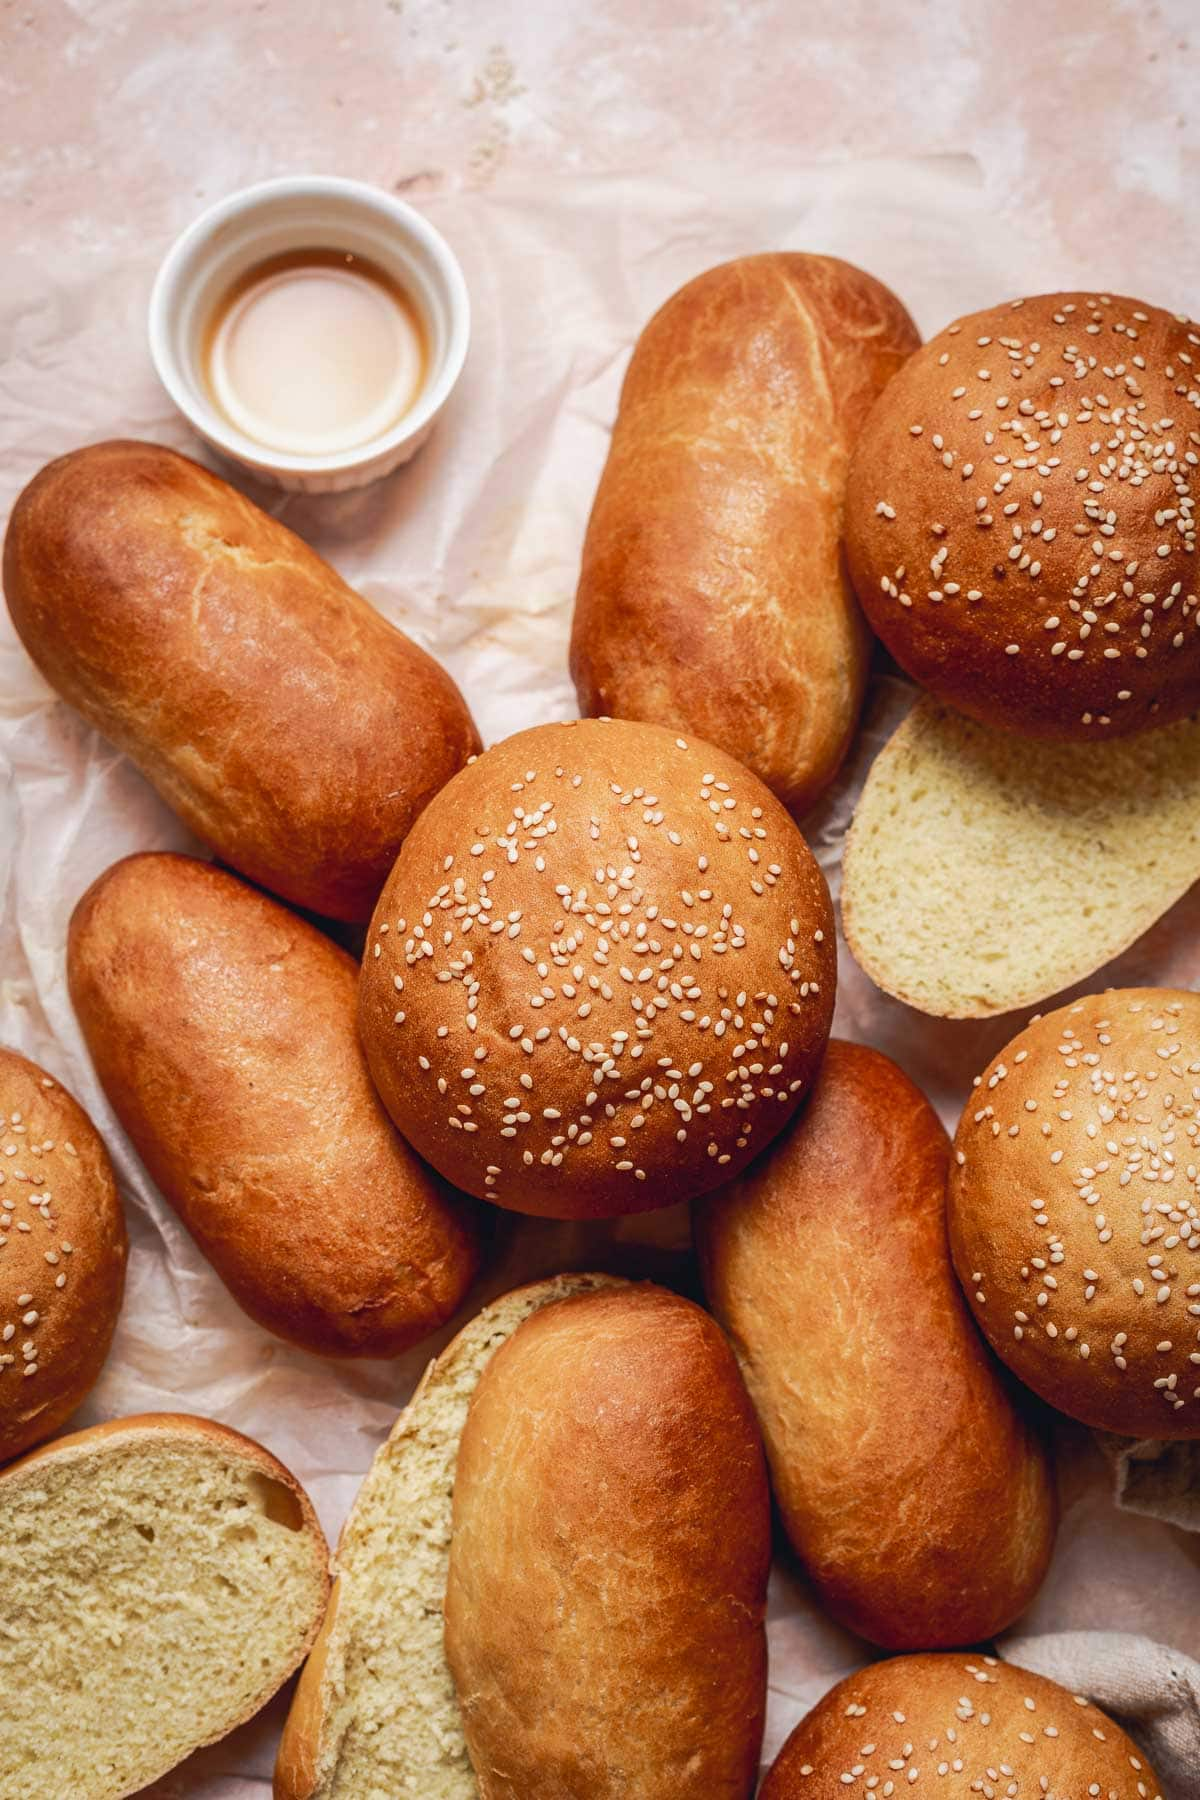 A group of baked bread including hot dog buns and sesame topped burger buns placed on crumpled baking paper.